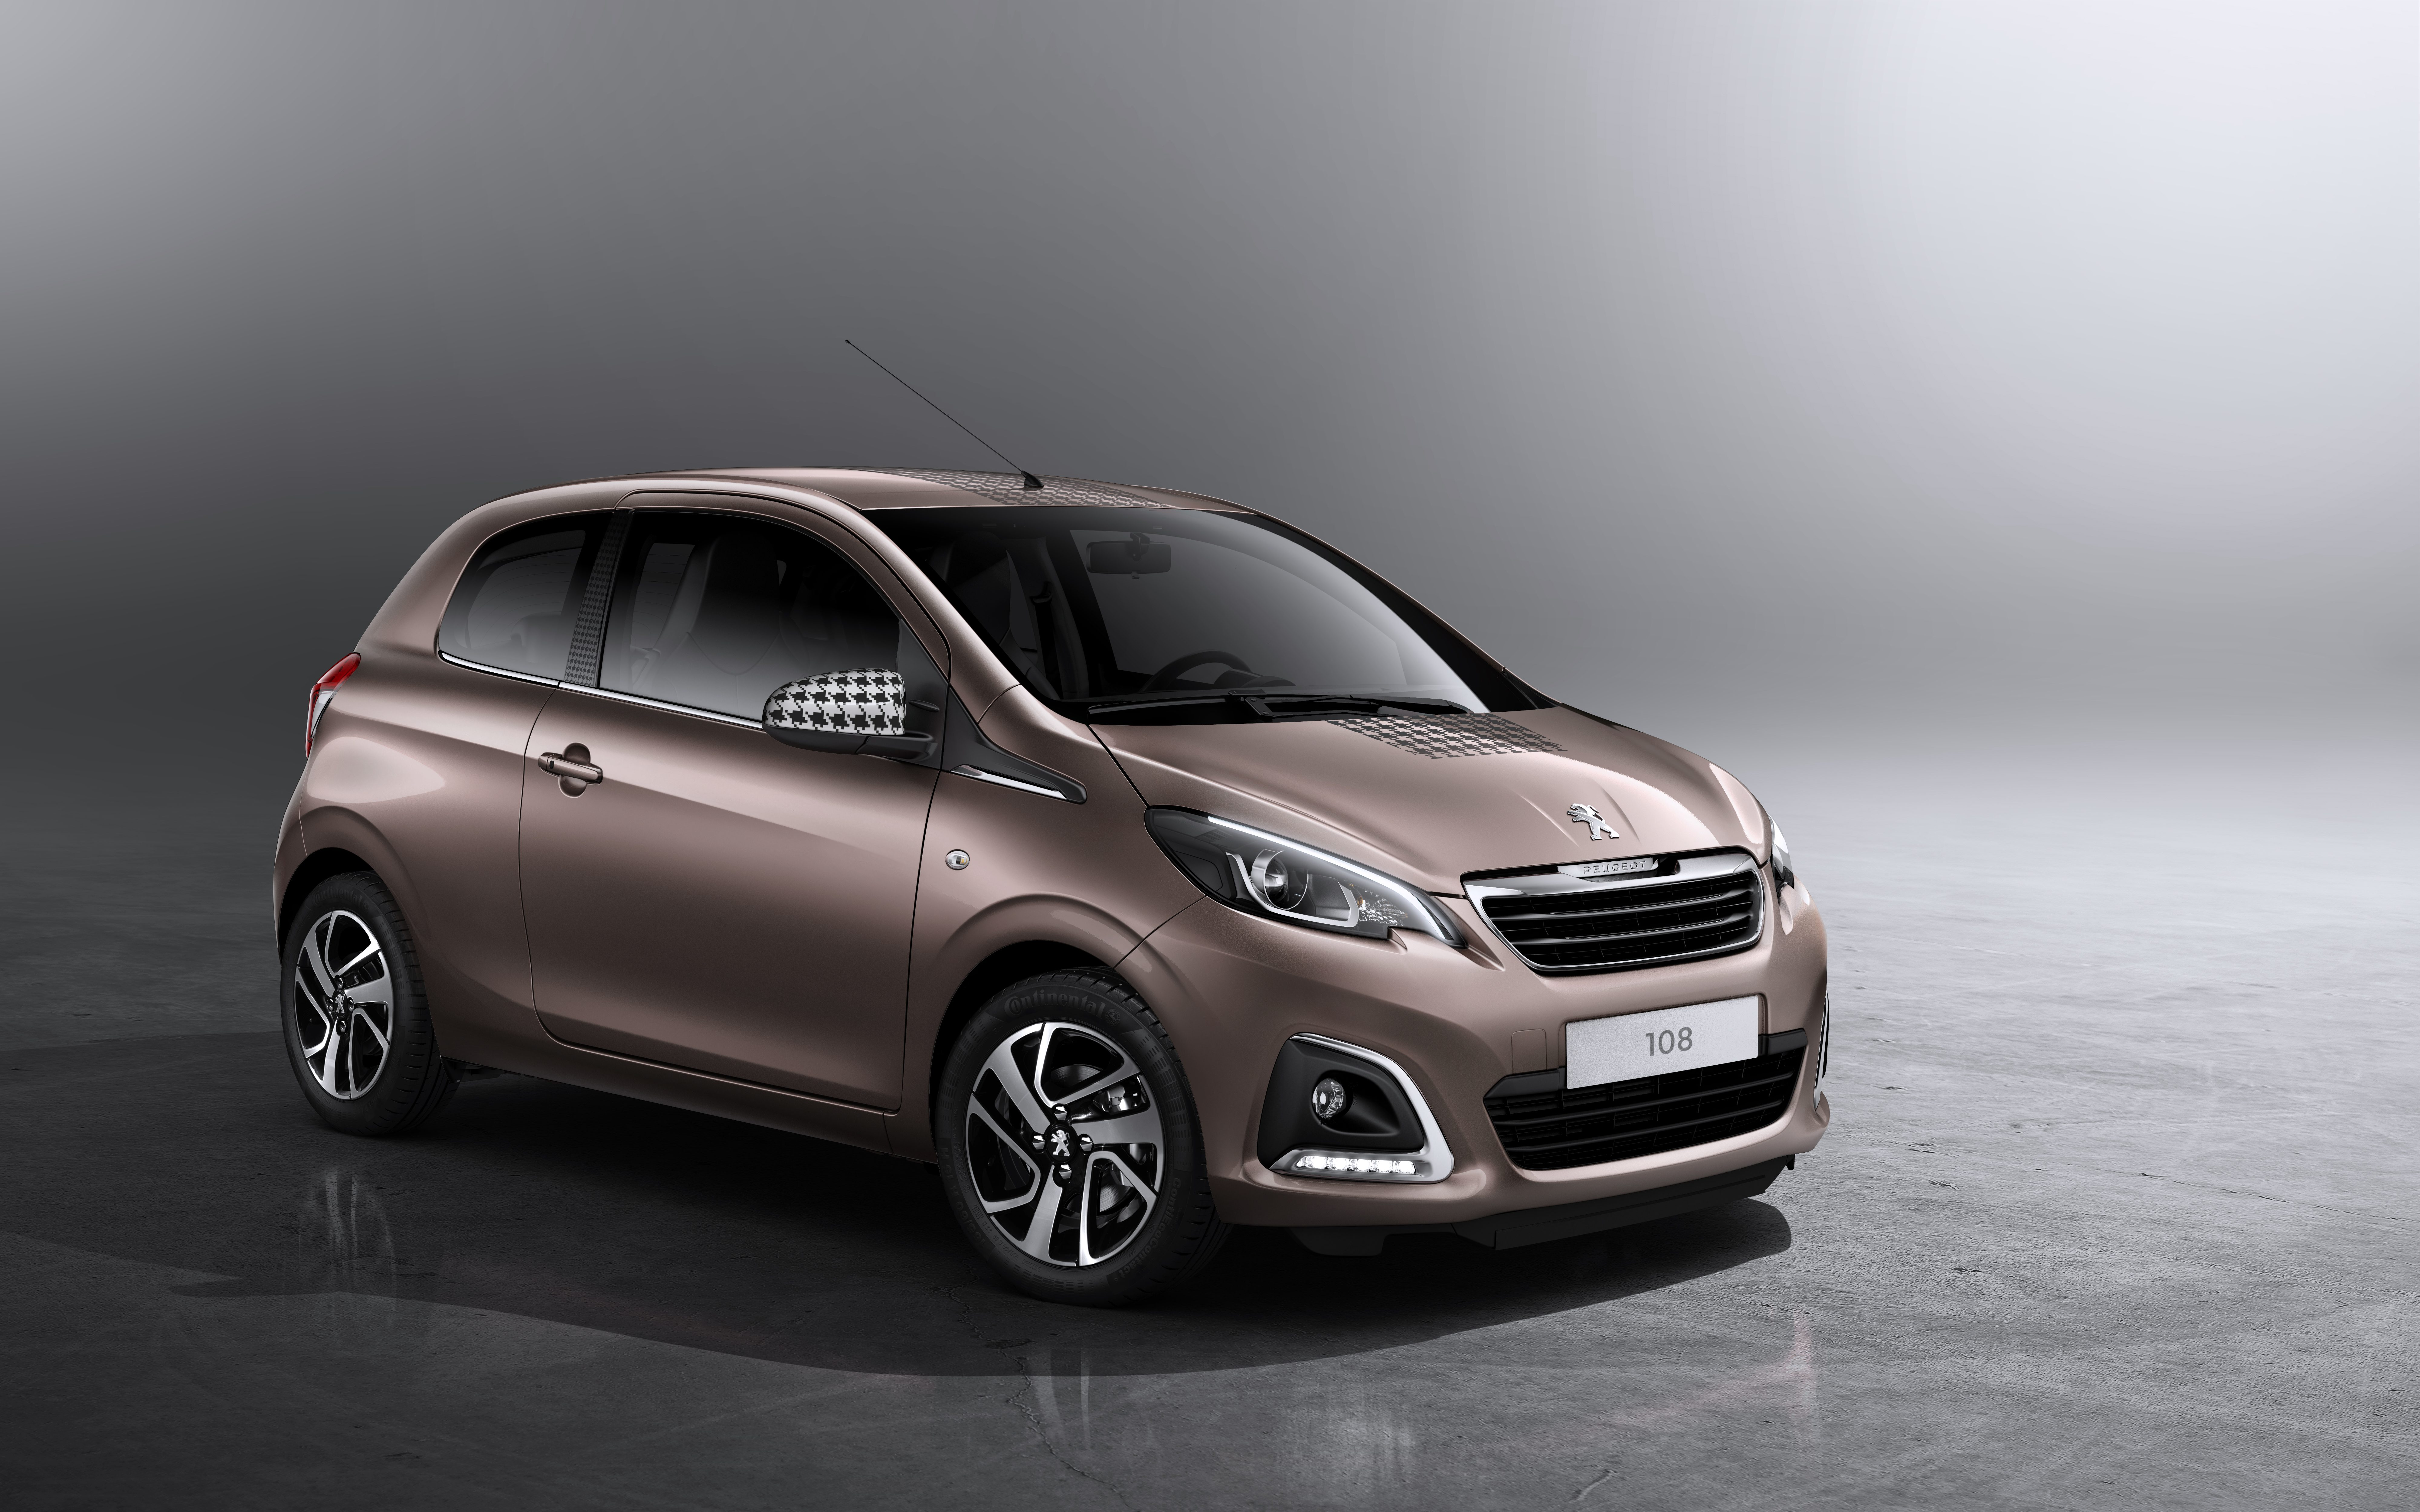 all new peugeot 108 the car for a new generation of city. Black Bedroom Furniture Sets. Home Design Ideas